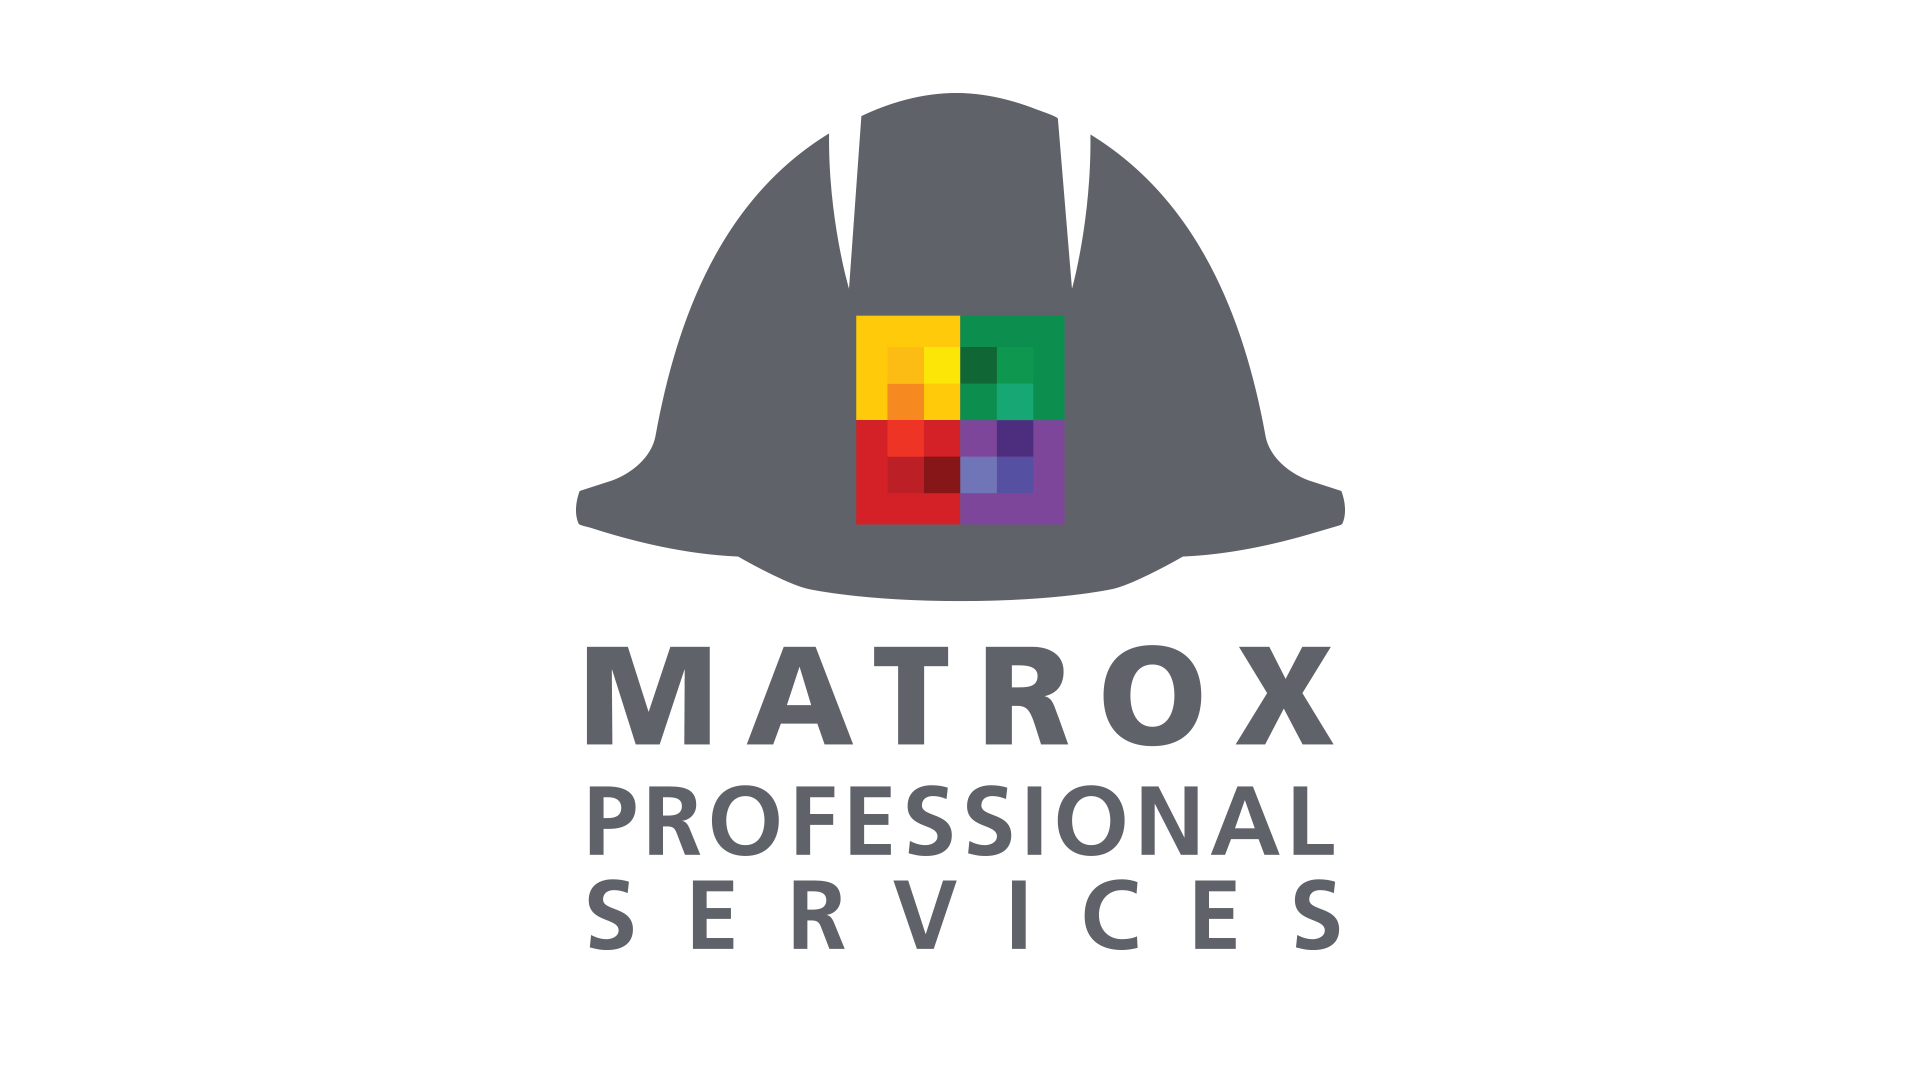 Matrox Professional Services